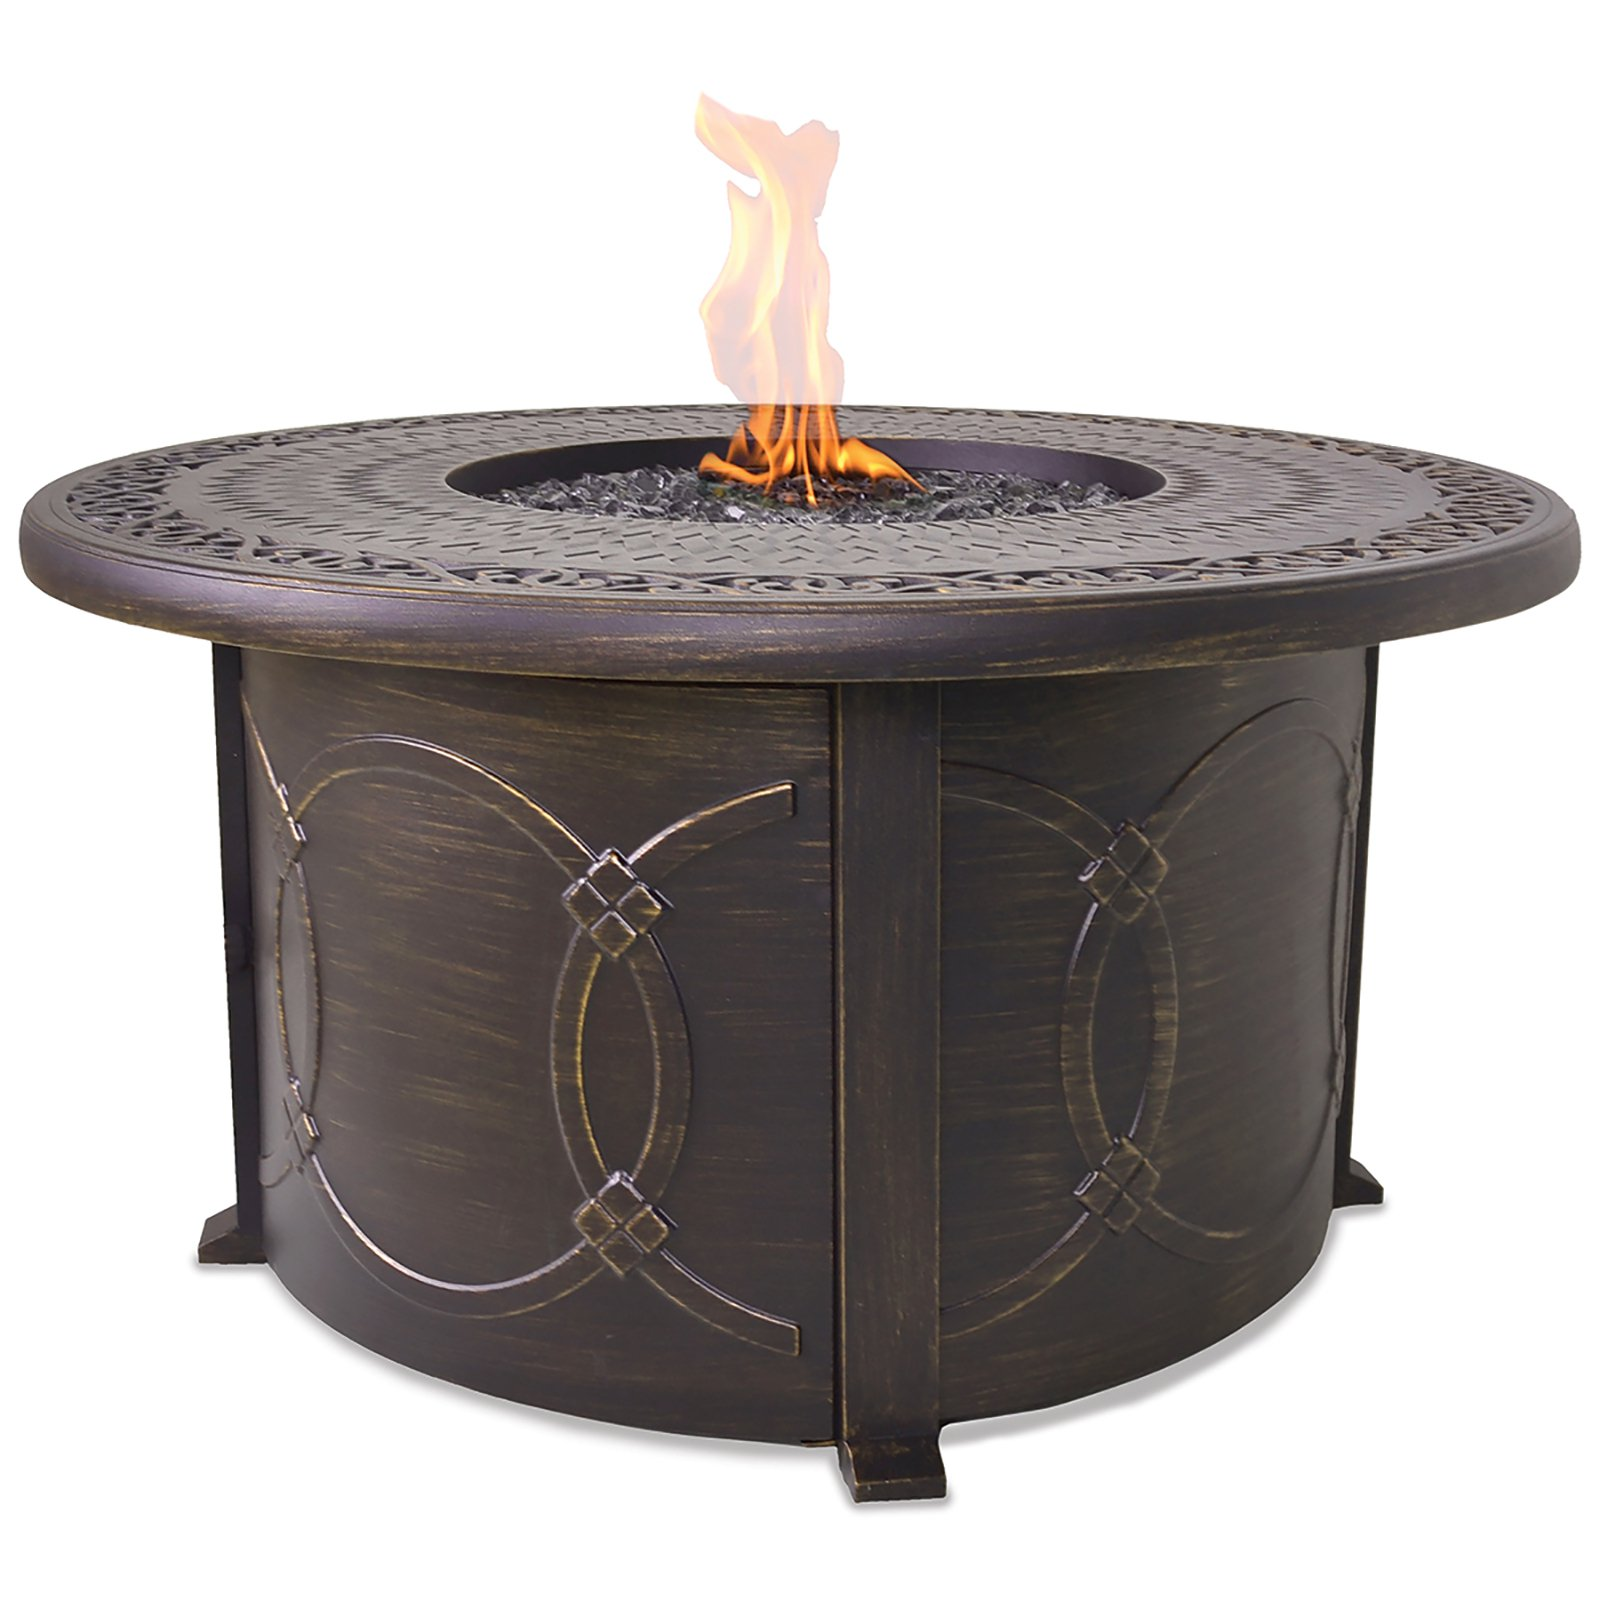 Endless Summer Uniflame Propane Gas Outdoor Firebowl With...